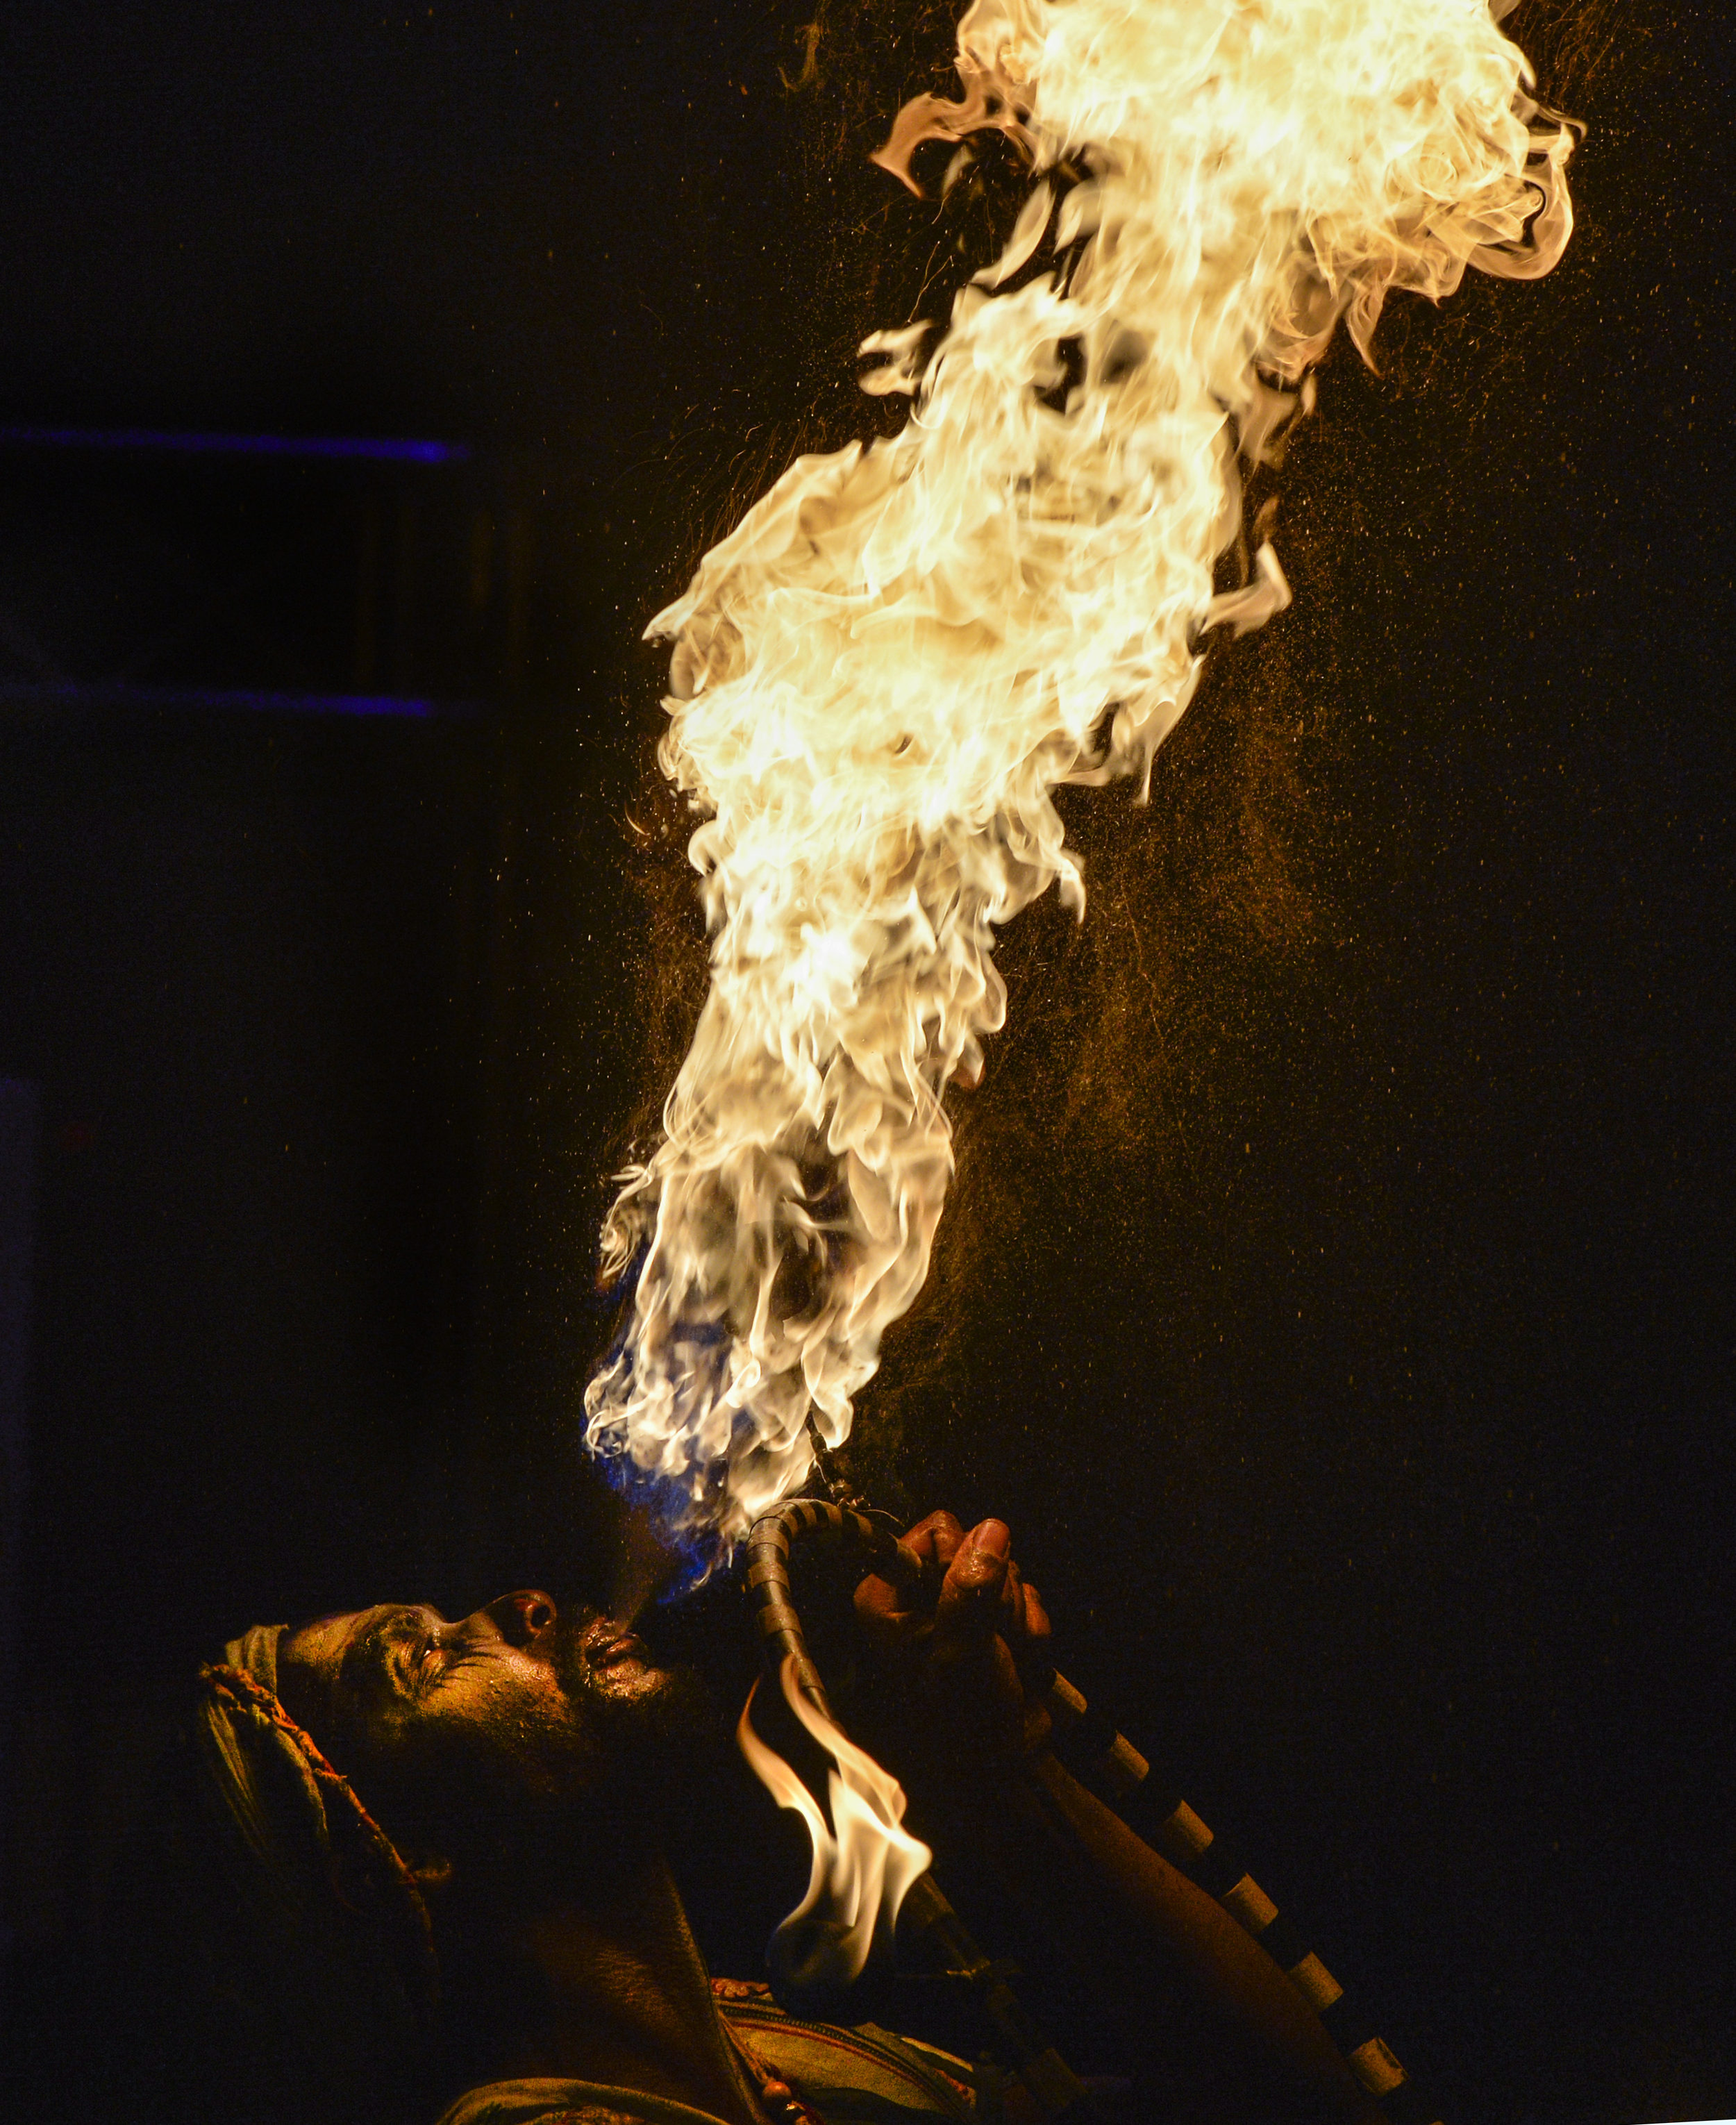 Solar Greye blows fire to end a performance at the Queen Mary's Dark Harbor which opens this weekend in Long Beach CA. Thursday October 1, 2015.